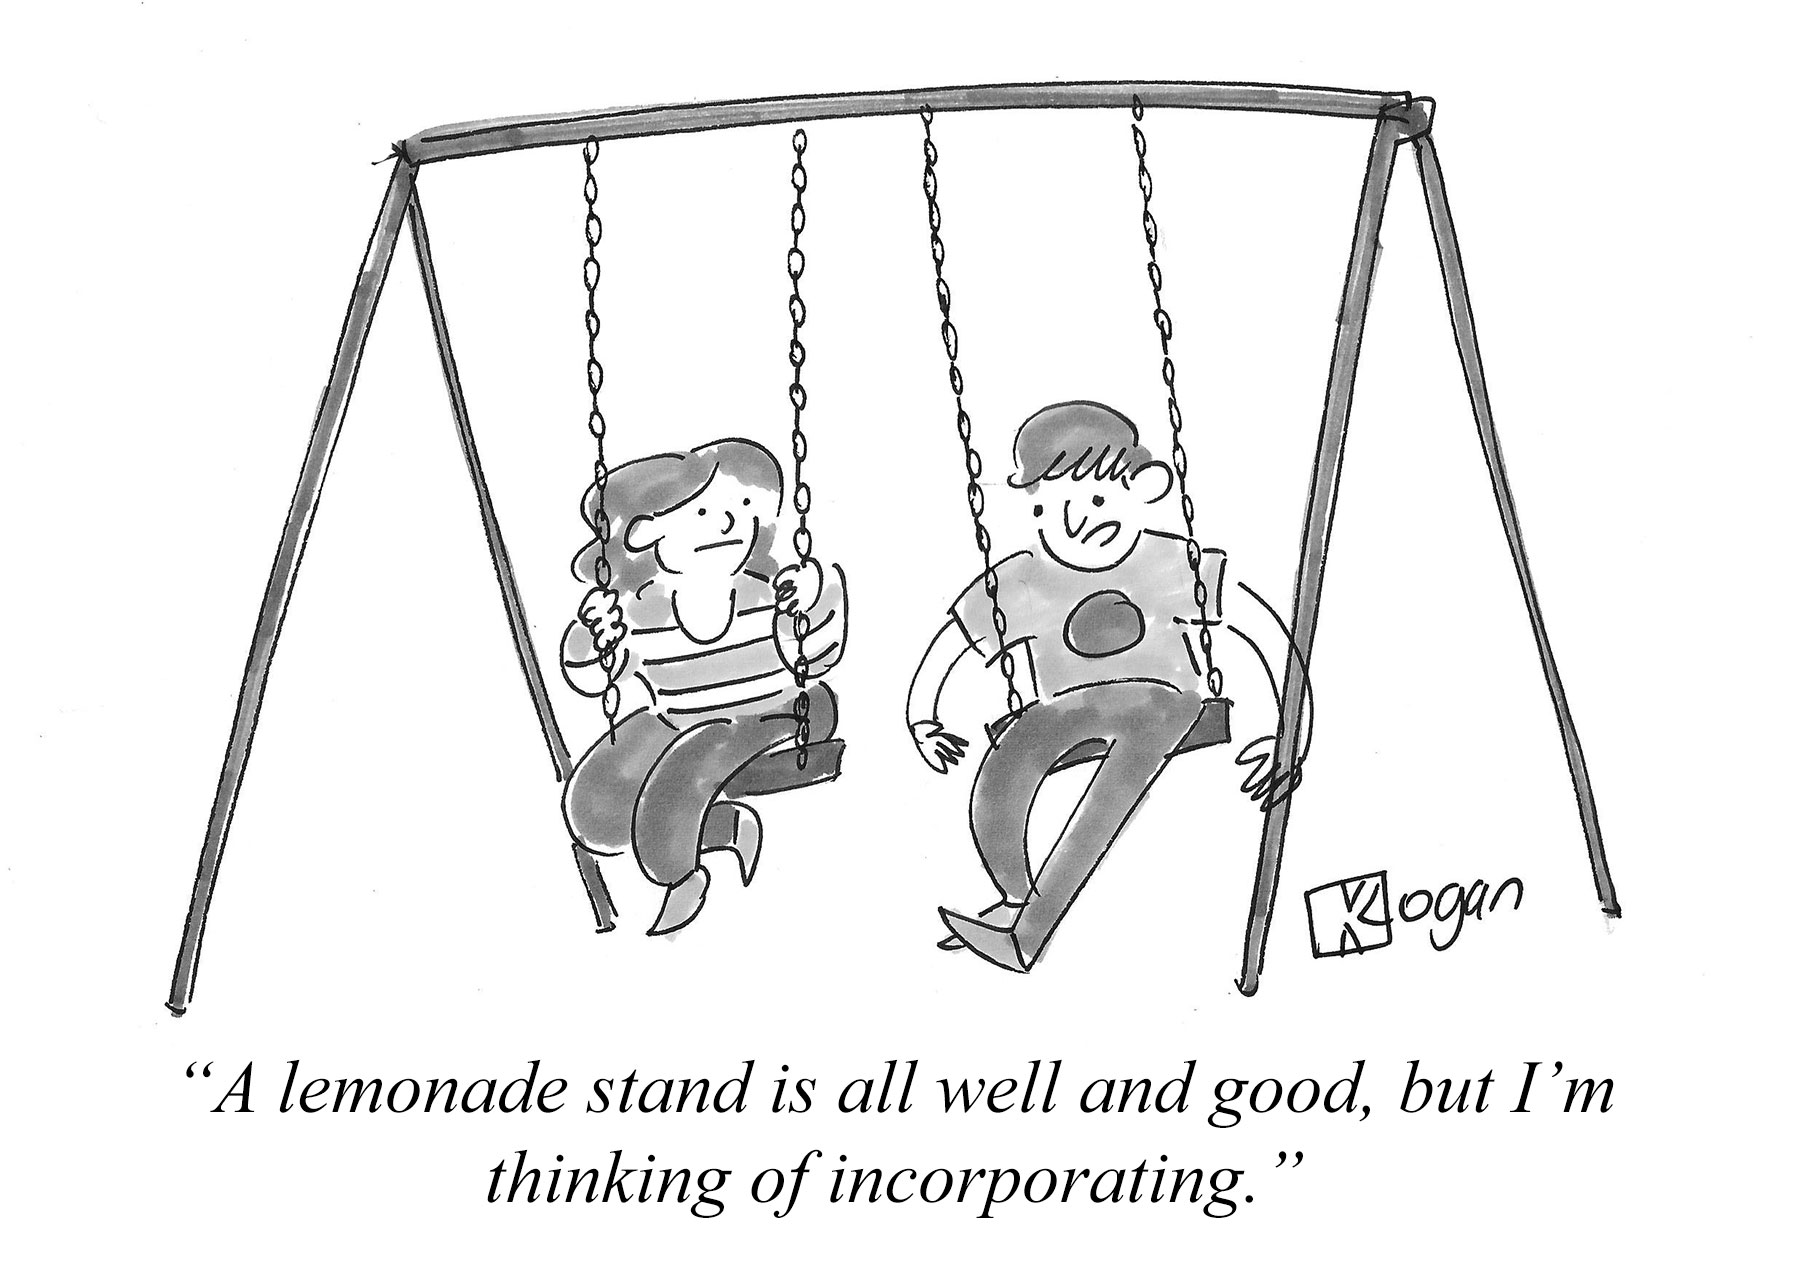 A lemonade stand is all well and good, but I'm thinking of incorporating.